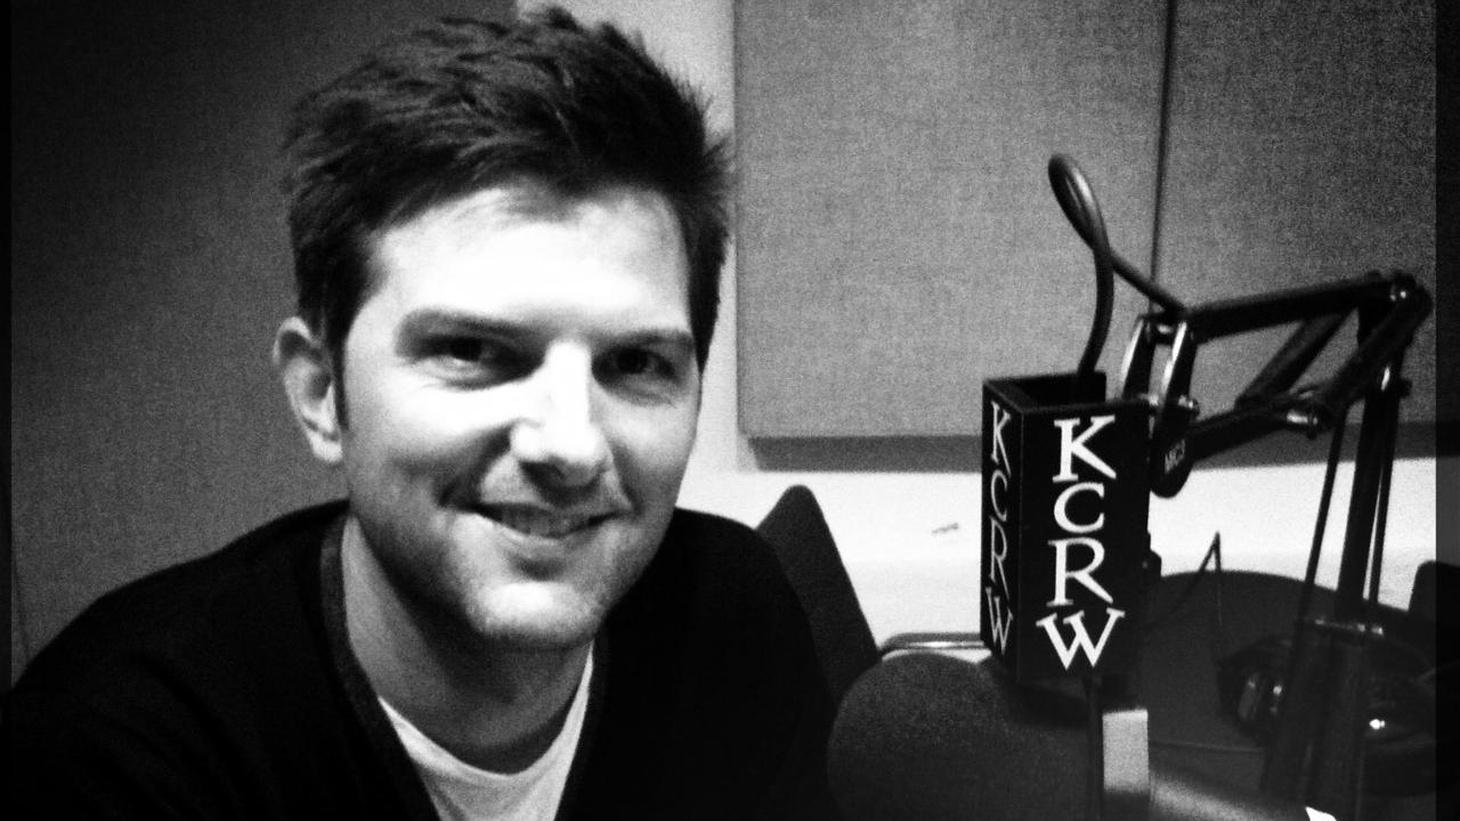 Adam Scott is one of the funniest actors around, from Party Down to recent comedy classic Stepbrothers. He talks about songs that shaped his sense of humor, a track that inspires his kids to play air guitar and picks one from his favorite band, R.E.M. in his Guest DJ set.